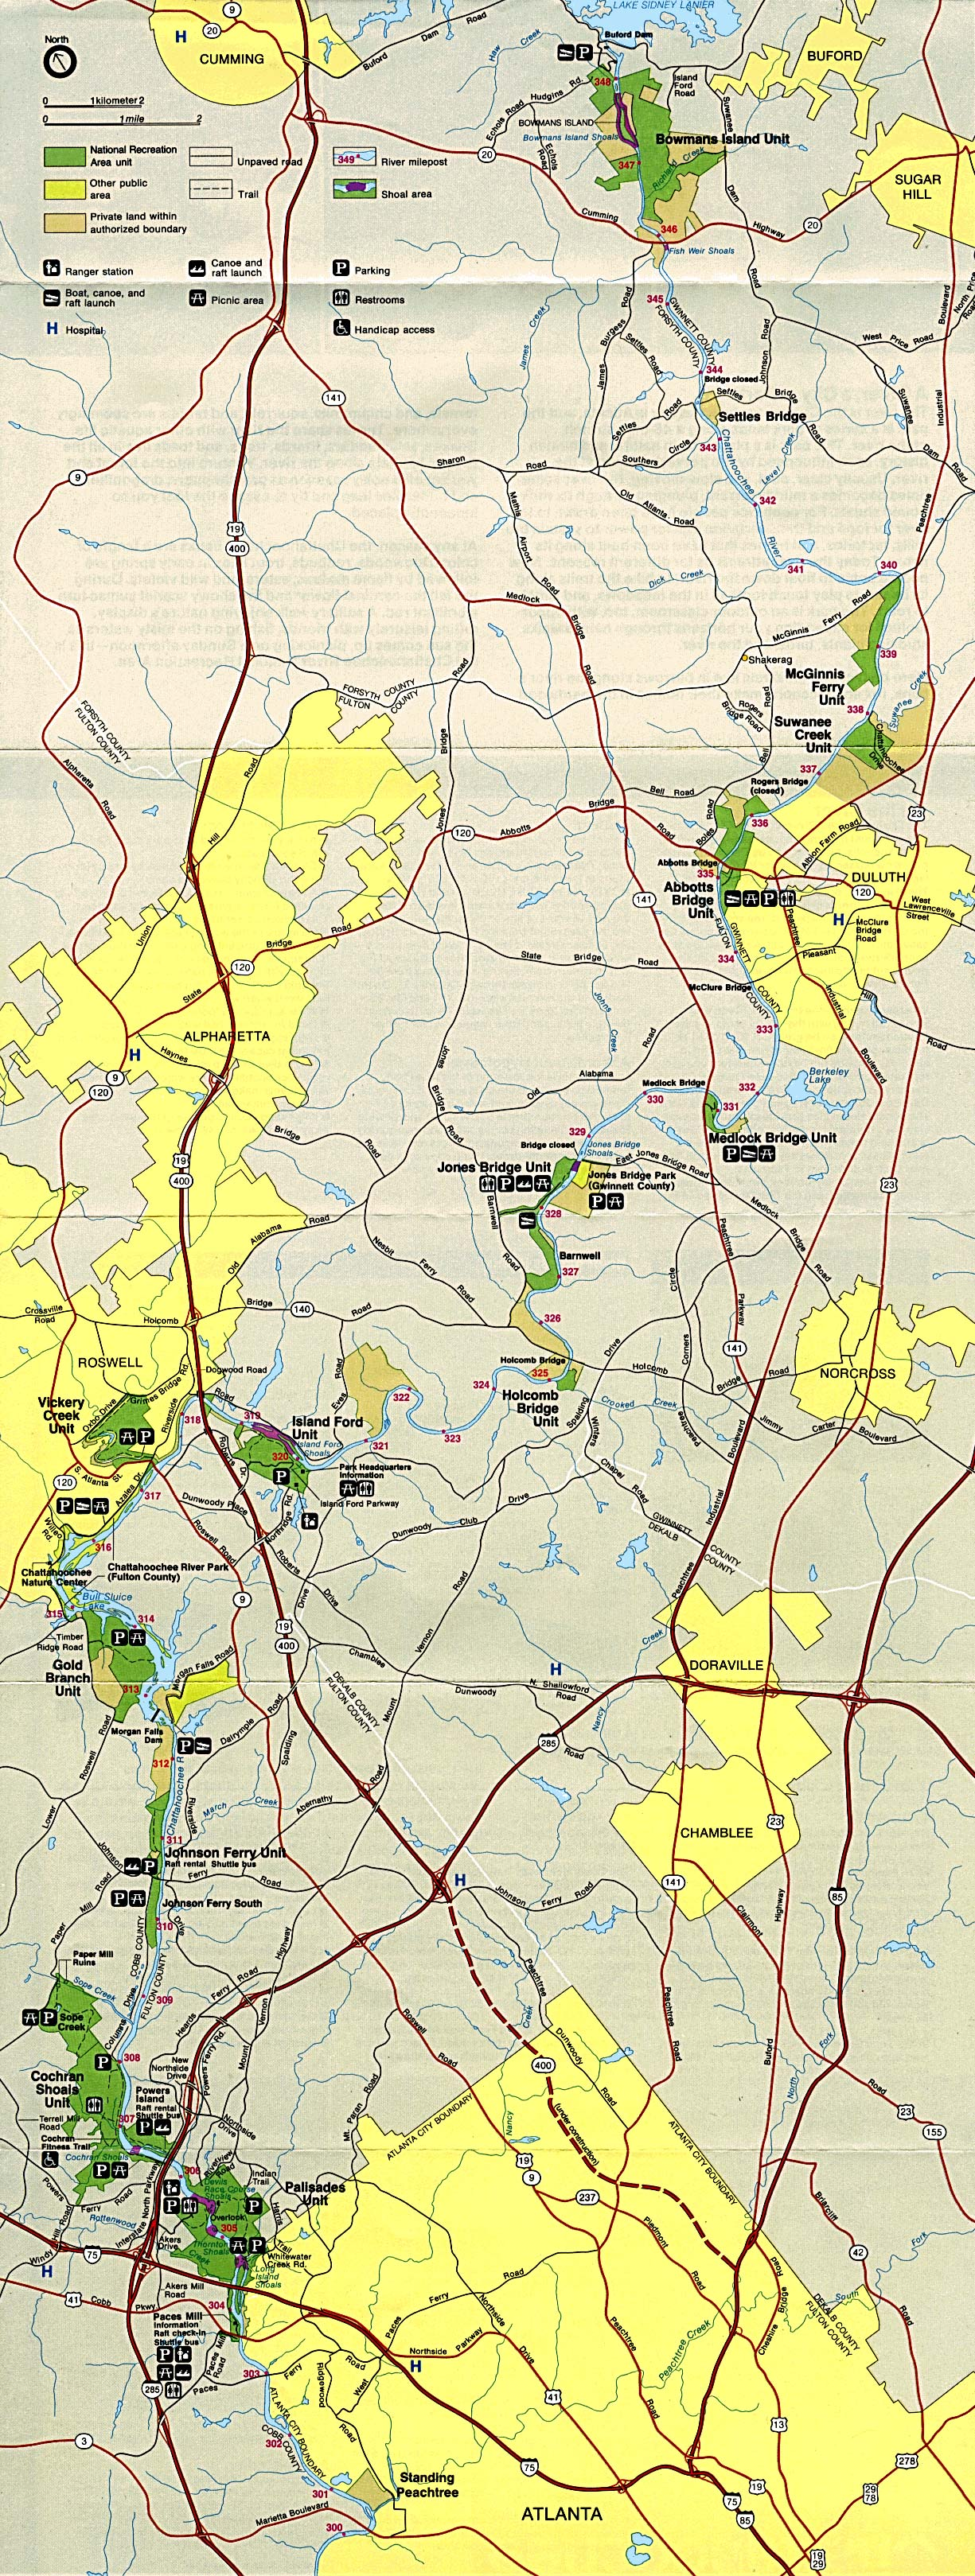 North Georgia Trout Online Maps - Georgia maps